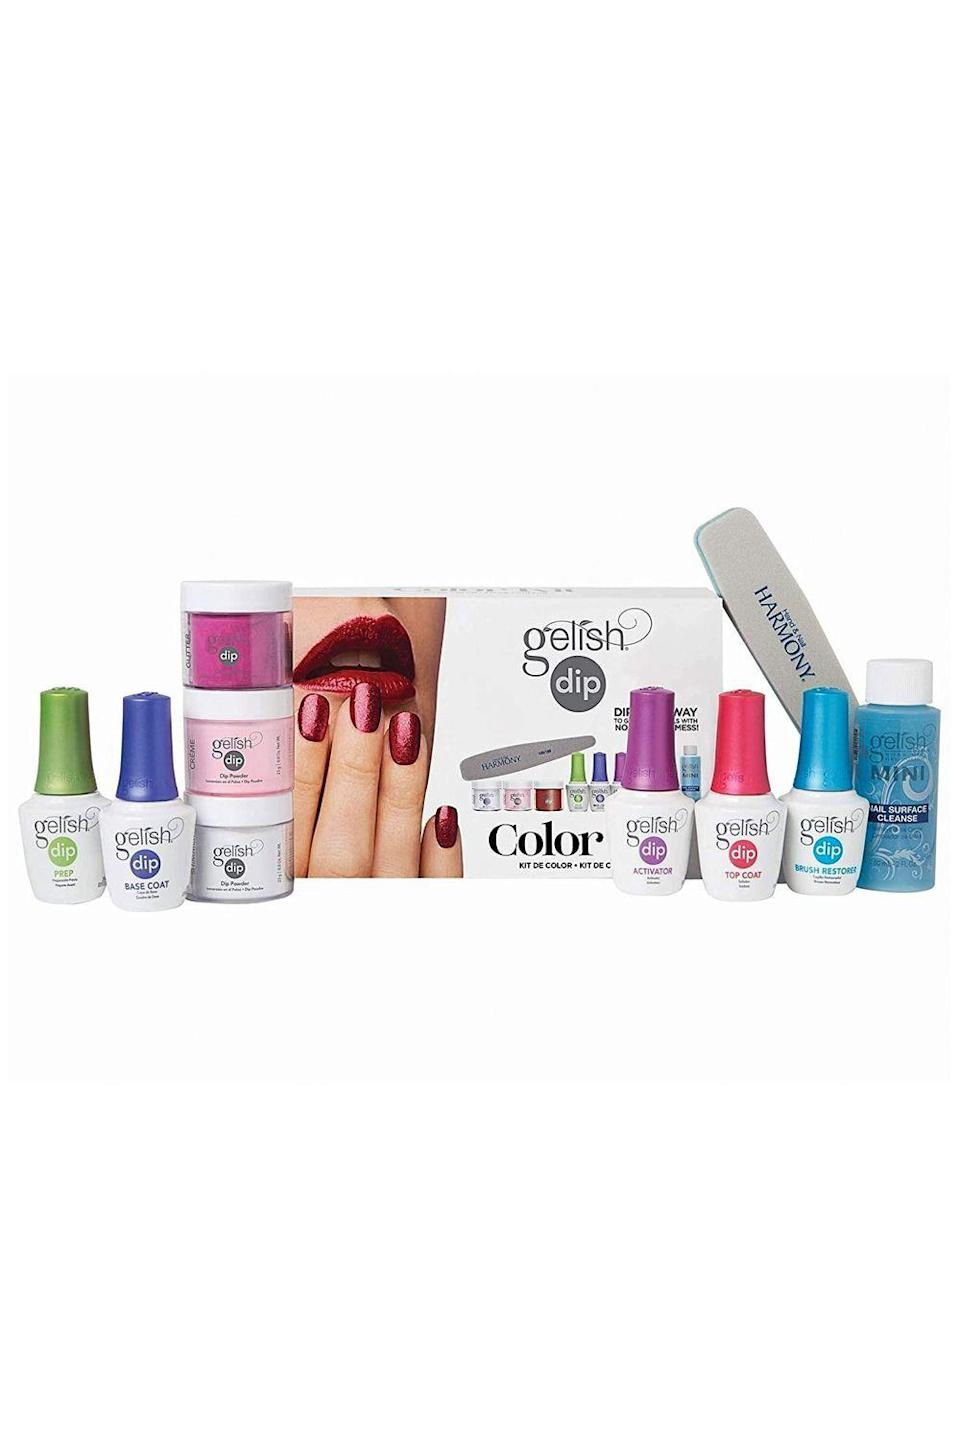 """<p><strong>Gelish</strong></p><p>amazon.com</p><p><strong>$109.99</strong></p><p><a href=""""https://www.amazon.com/dp/B073BRZNDG?tag=syn-yahoo-20&ascsubtag=%5Bartid%7C10049.g.31817042%5Bsrc%7Cyahoo-us"""" rel=""""nofollow noopener"""" target=""""_blank"""" data-ylk=""""slk:Shop Now"""" class=""""link rapid-noclick-resp"""">Shop Now</a></p><p>NGL, when it comes to the finish, dip powder manicures lean more matte than super shiny. If that's not your vibe anyways, you'll love this at-home dip powder kit. <strong>The <a href=""""https://www.cosmopolitan.com/style-beauty/beauty/g29548552/best-top-coat-nail-polish/"""" rel=""""nofollow noopener"""" target=""""_blank"""" data-ylk=""""slk:top coat formula"""" class=""""link rapid-noclick-resp"""">top coat formula</a> leaves behind an extra-shiny finish, </strong>just like the manis you used to get at the salon.<br></p>"""